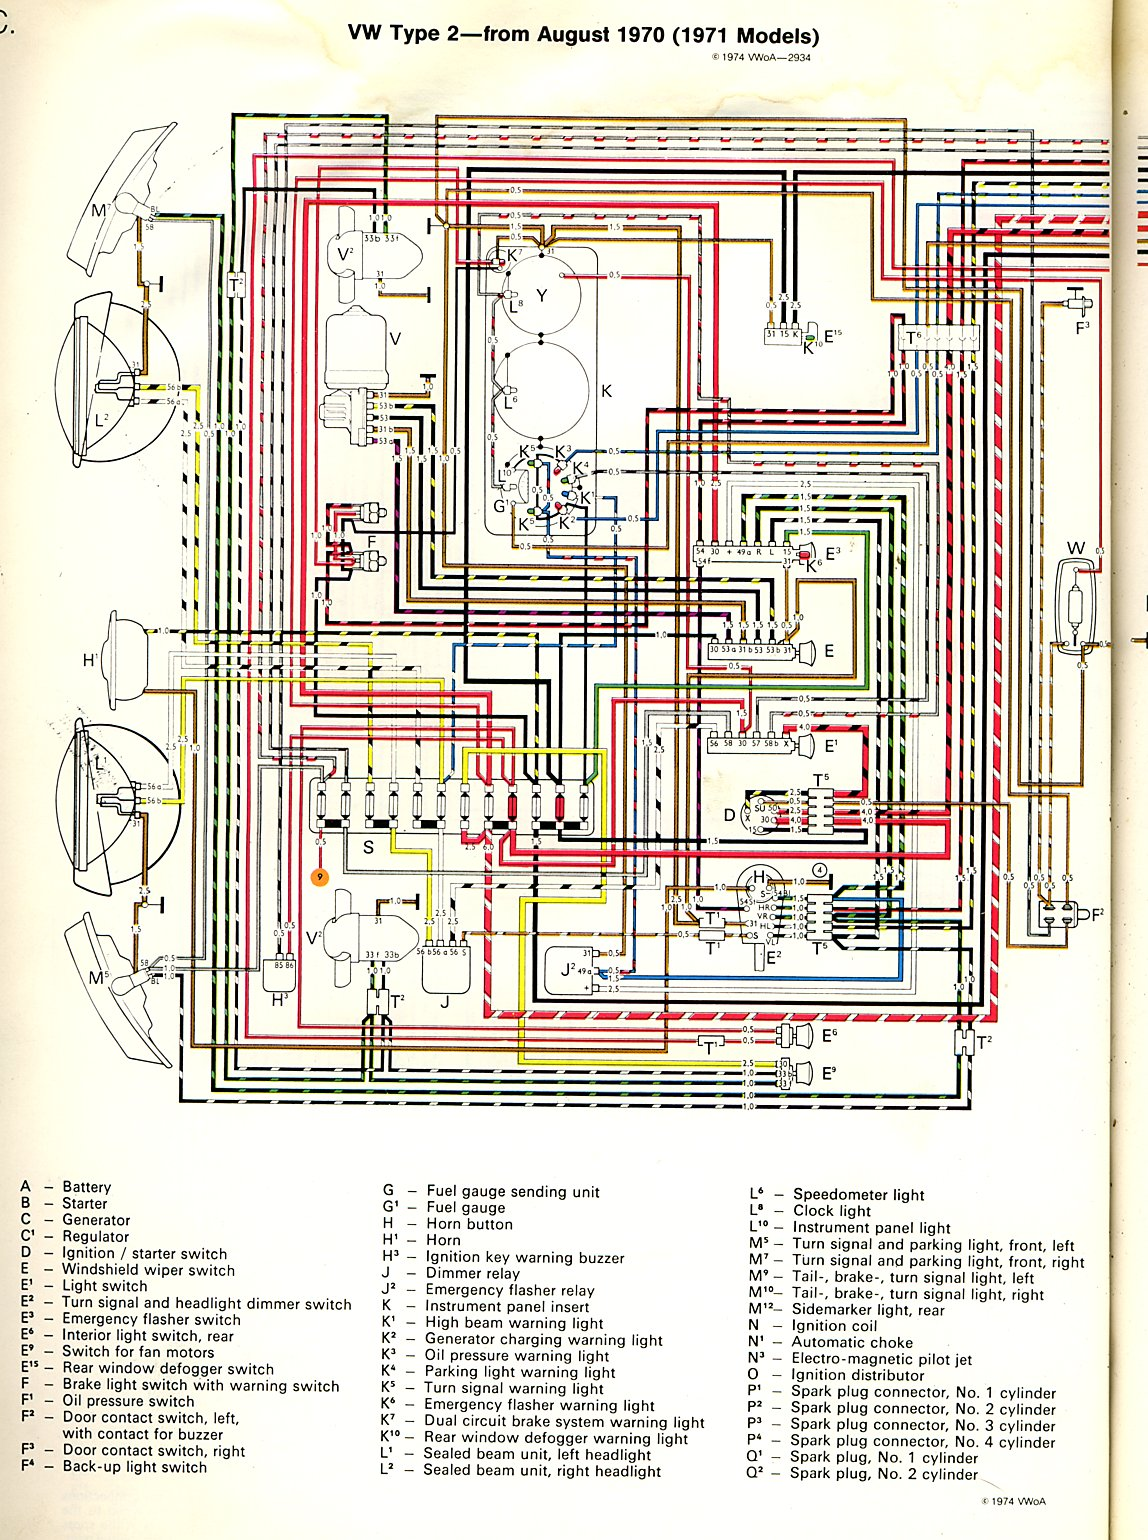 baybus_71a thesamba com type 2 wiring diagrams 1978 vw bus fuse box diagram at bayanpartner.co